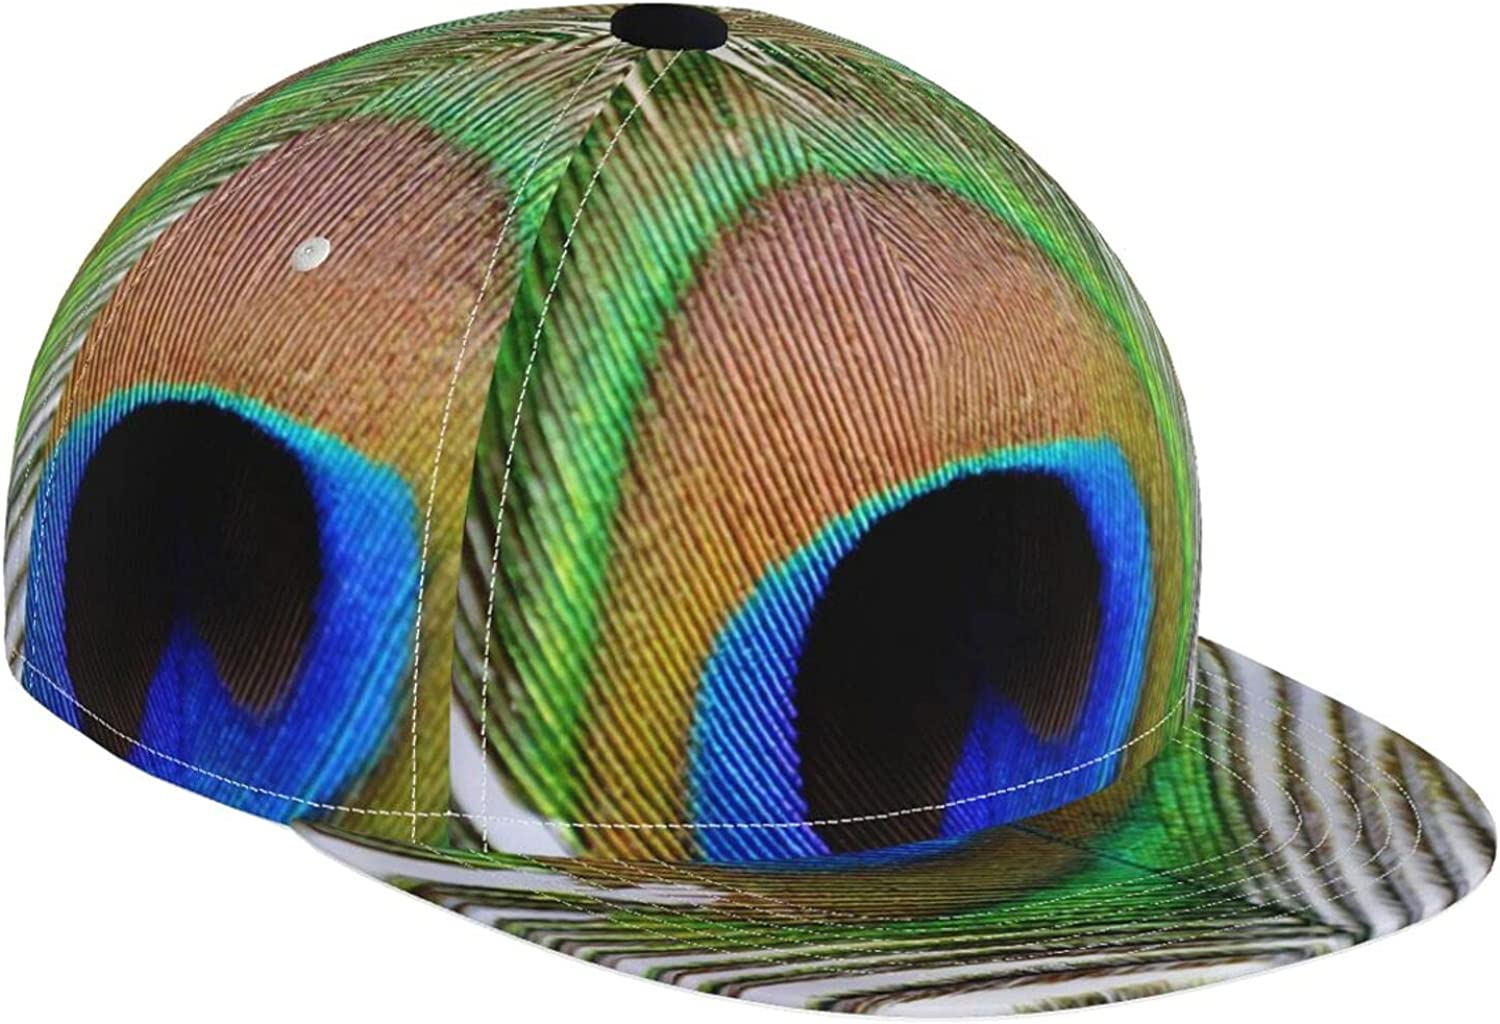 overseas New item KINESONSS Fantasy Peacock Feather Baseball Adjust Hat Casual Cap